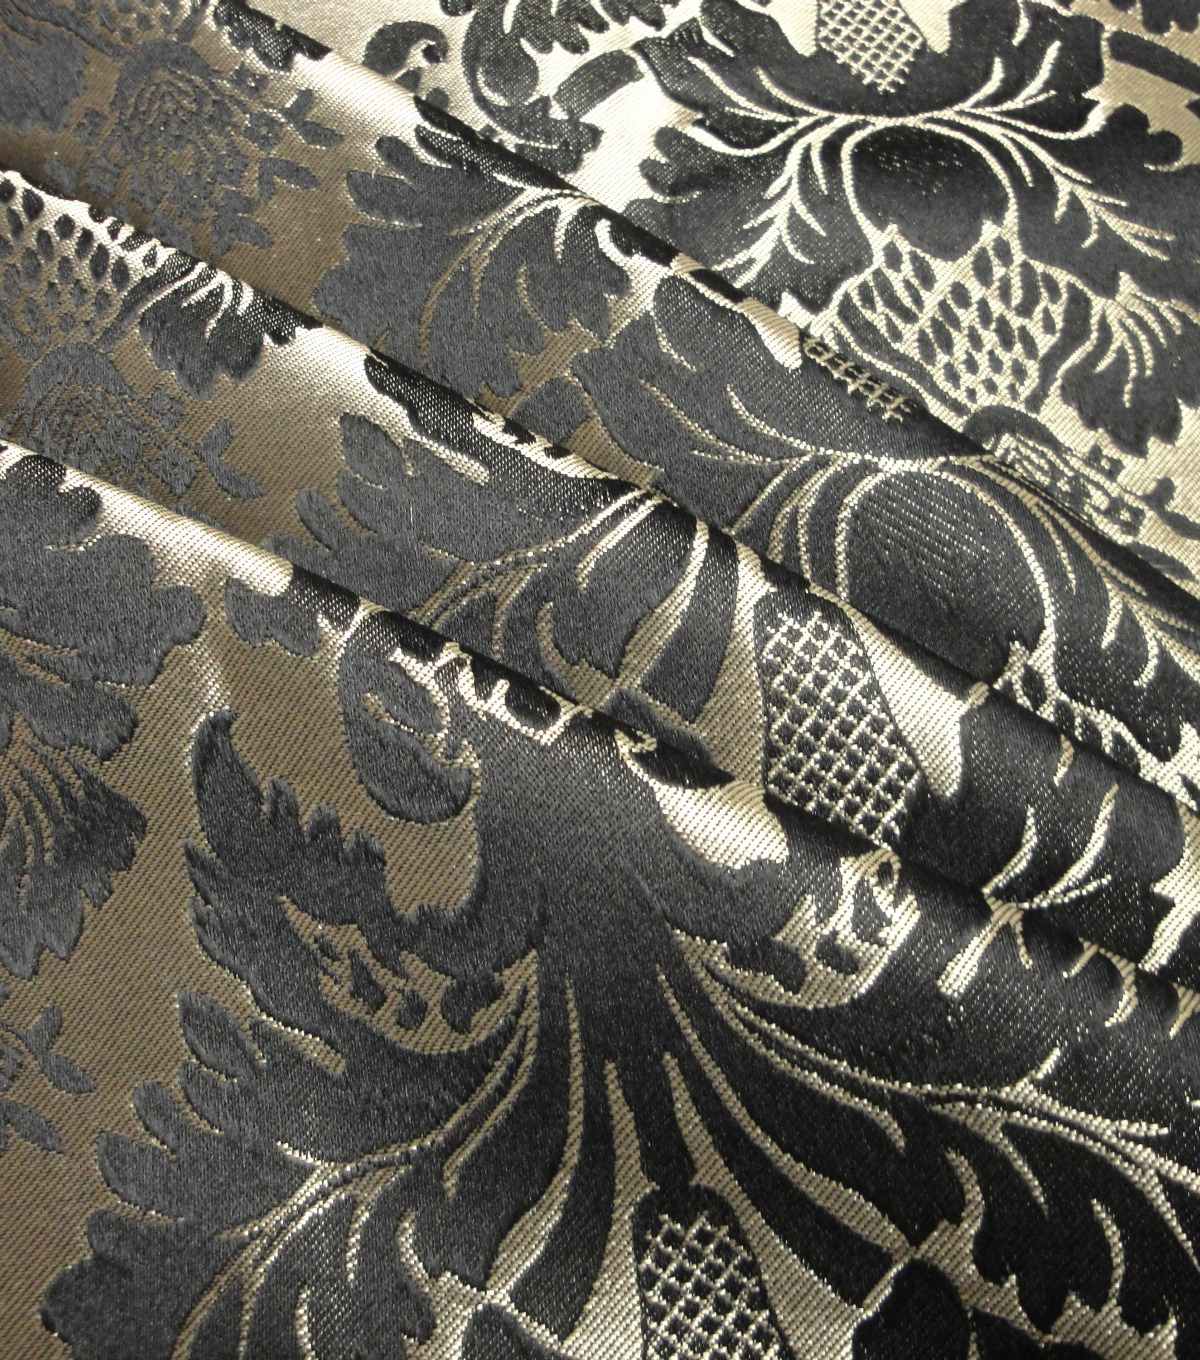 Yaya Han Cosplay Thrones Brocade Fabric 59\u0027\u0027-Black & Gold